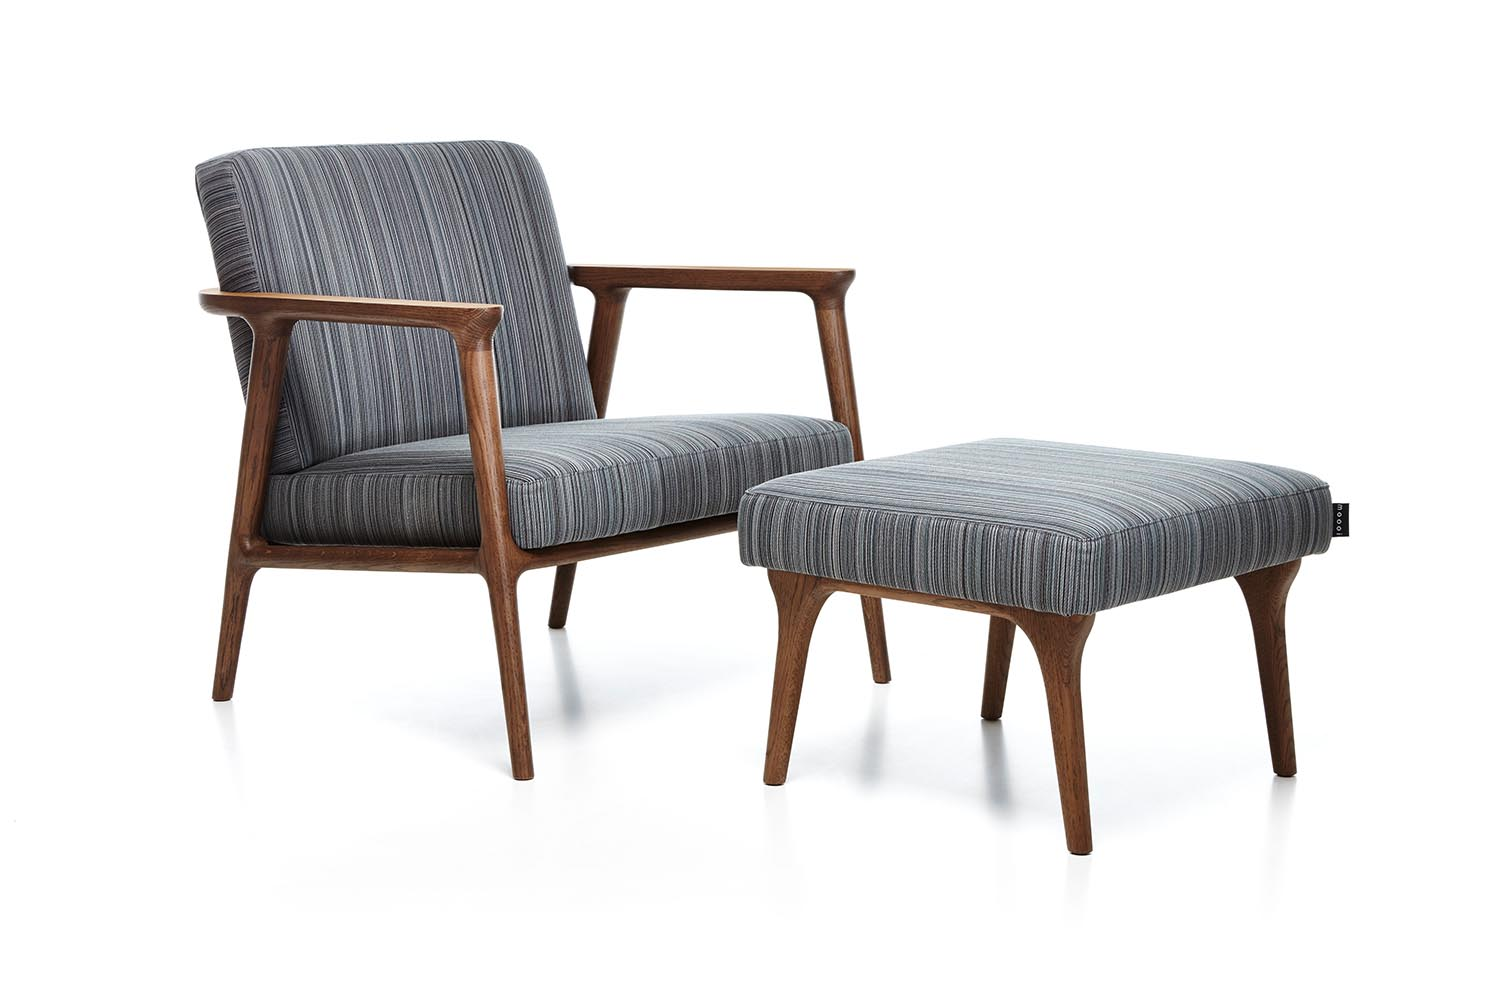 leanback lounger chairs z high chair zio lounge by marcel wanders for moooi space furniture